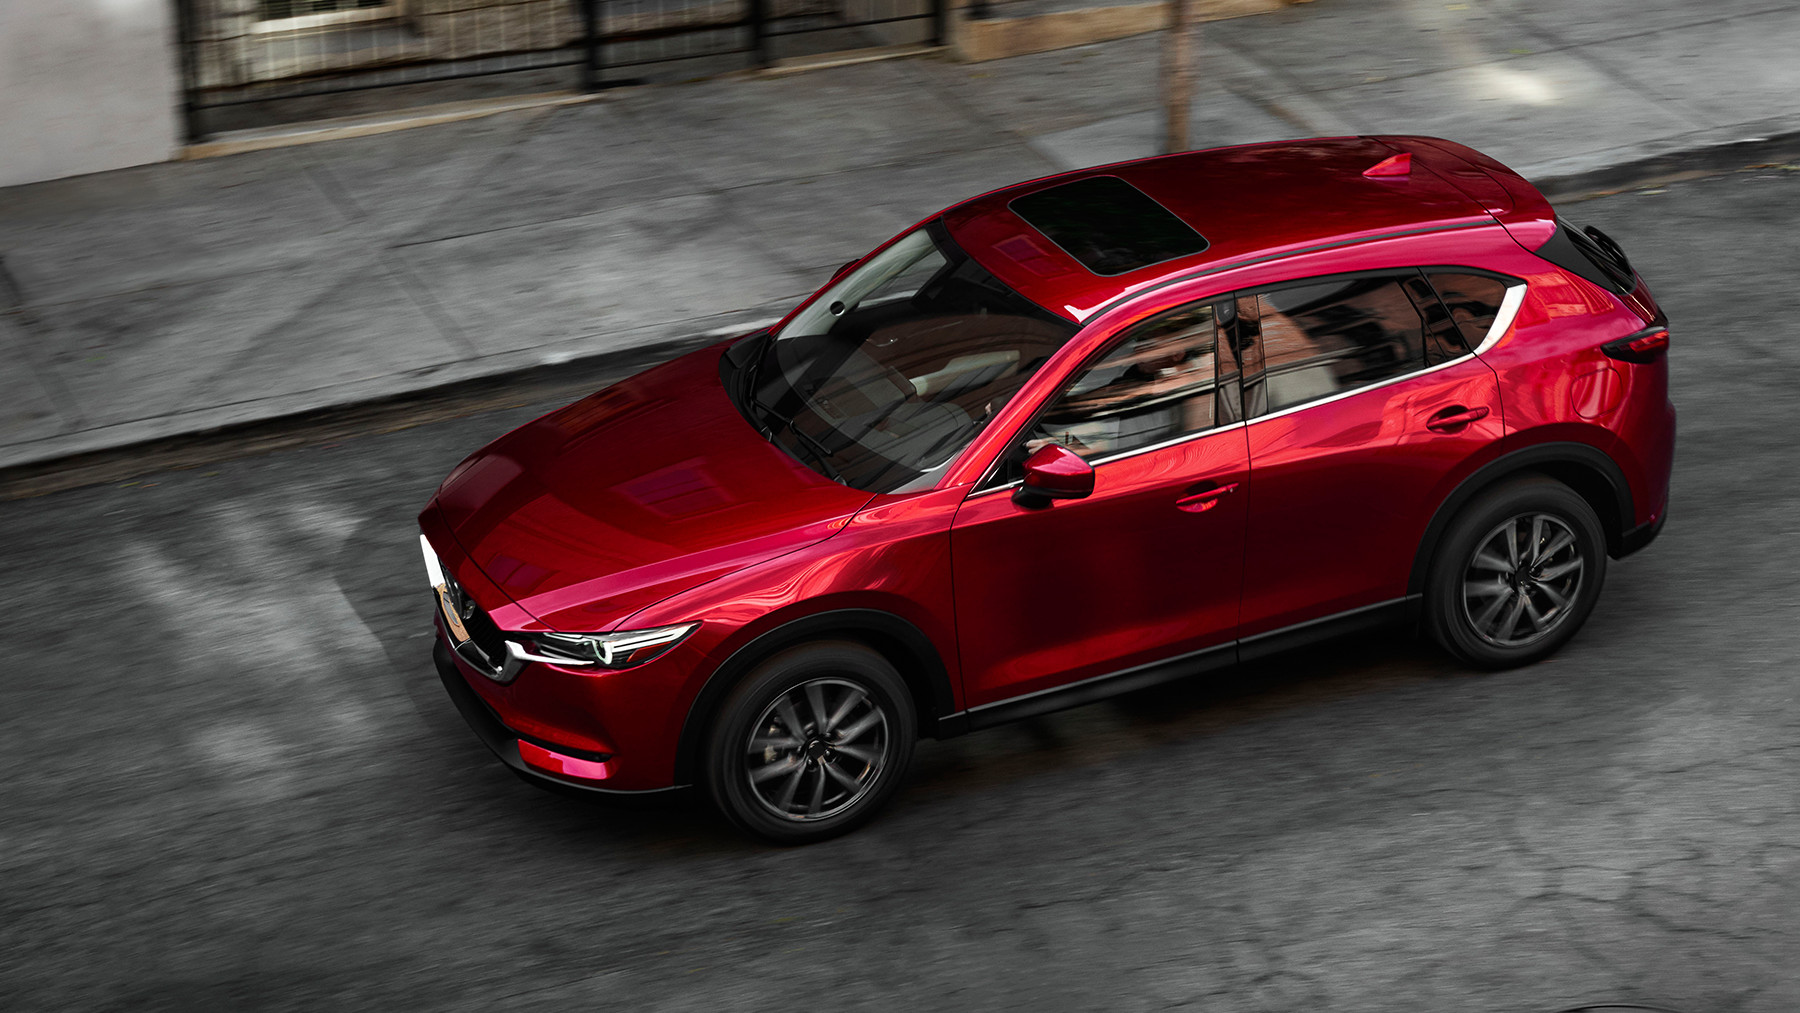 New Mazda CX-5 front view